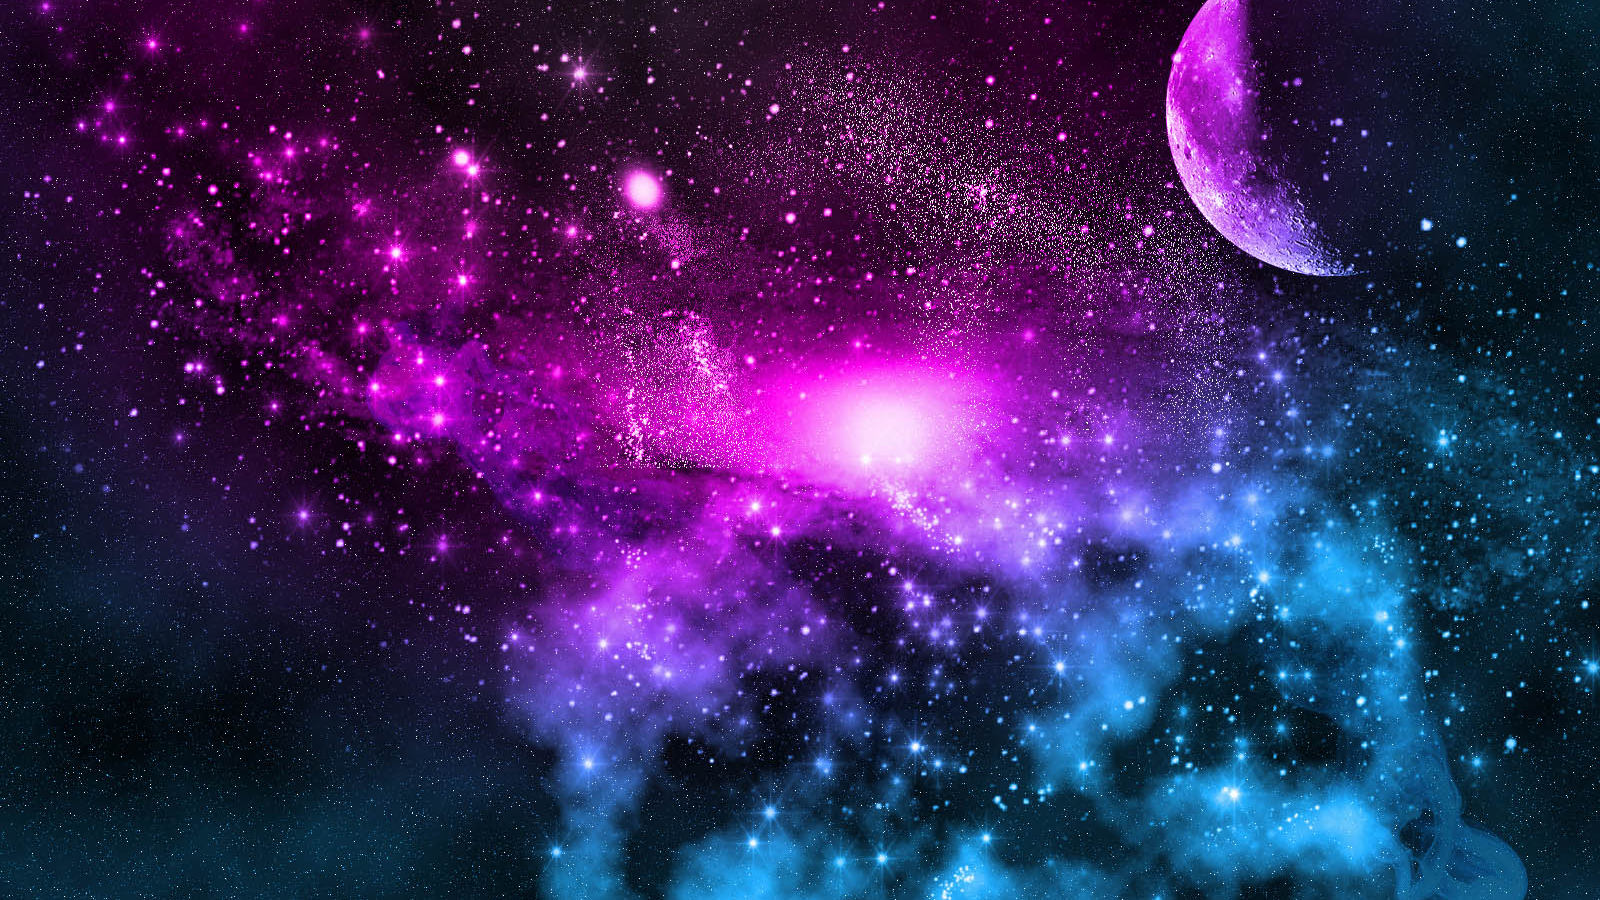 Free Download Colorful Galaxy Backgrounds 1600x1000 For Your Desktop Mobile Tablet Explore 48 Colorful Galaxy Wallpaper Colorful Stars Wallpaper Epic Colorful Wallpapers Tumblr Galaxy Wallpaper